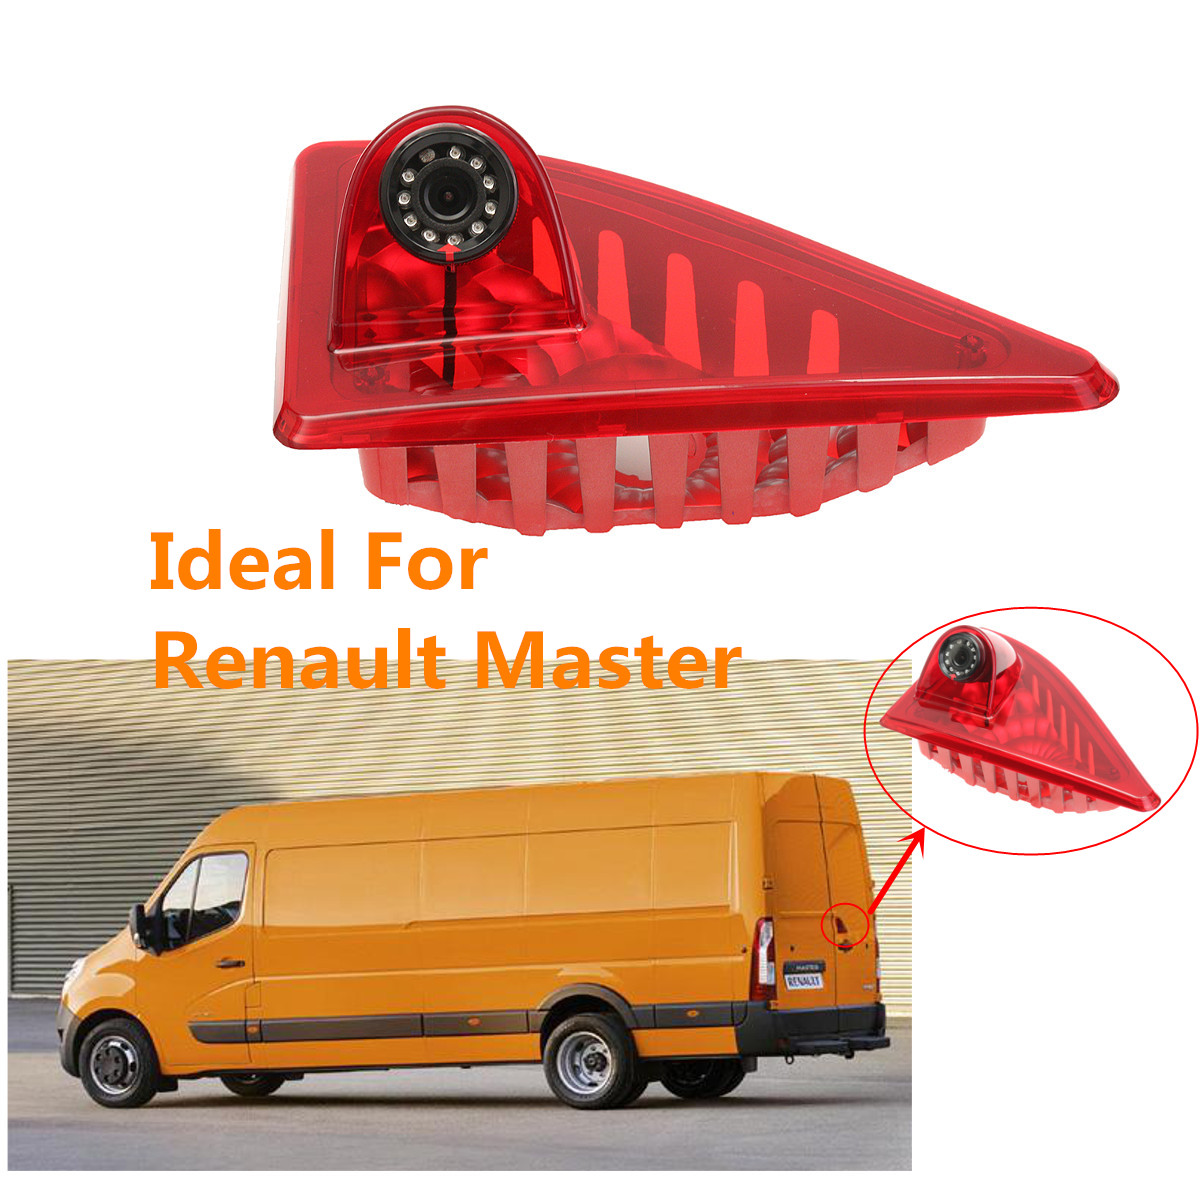 12V Car Brake Light Rear View Camera  Reverse Backup 3RD Night Vision Parking For Renault Master With Built-in 10 IR Led Light